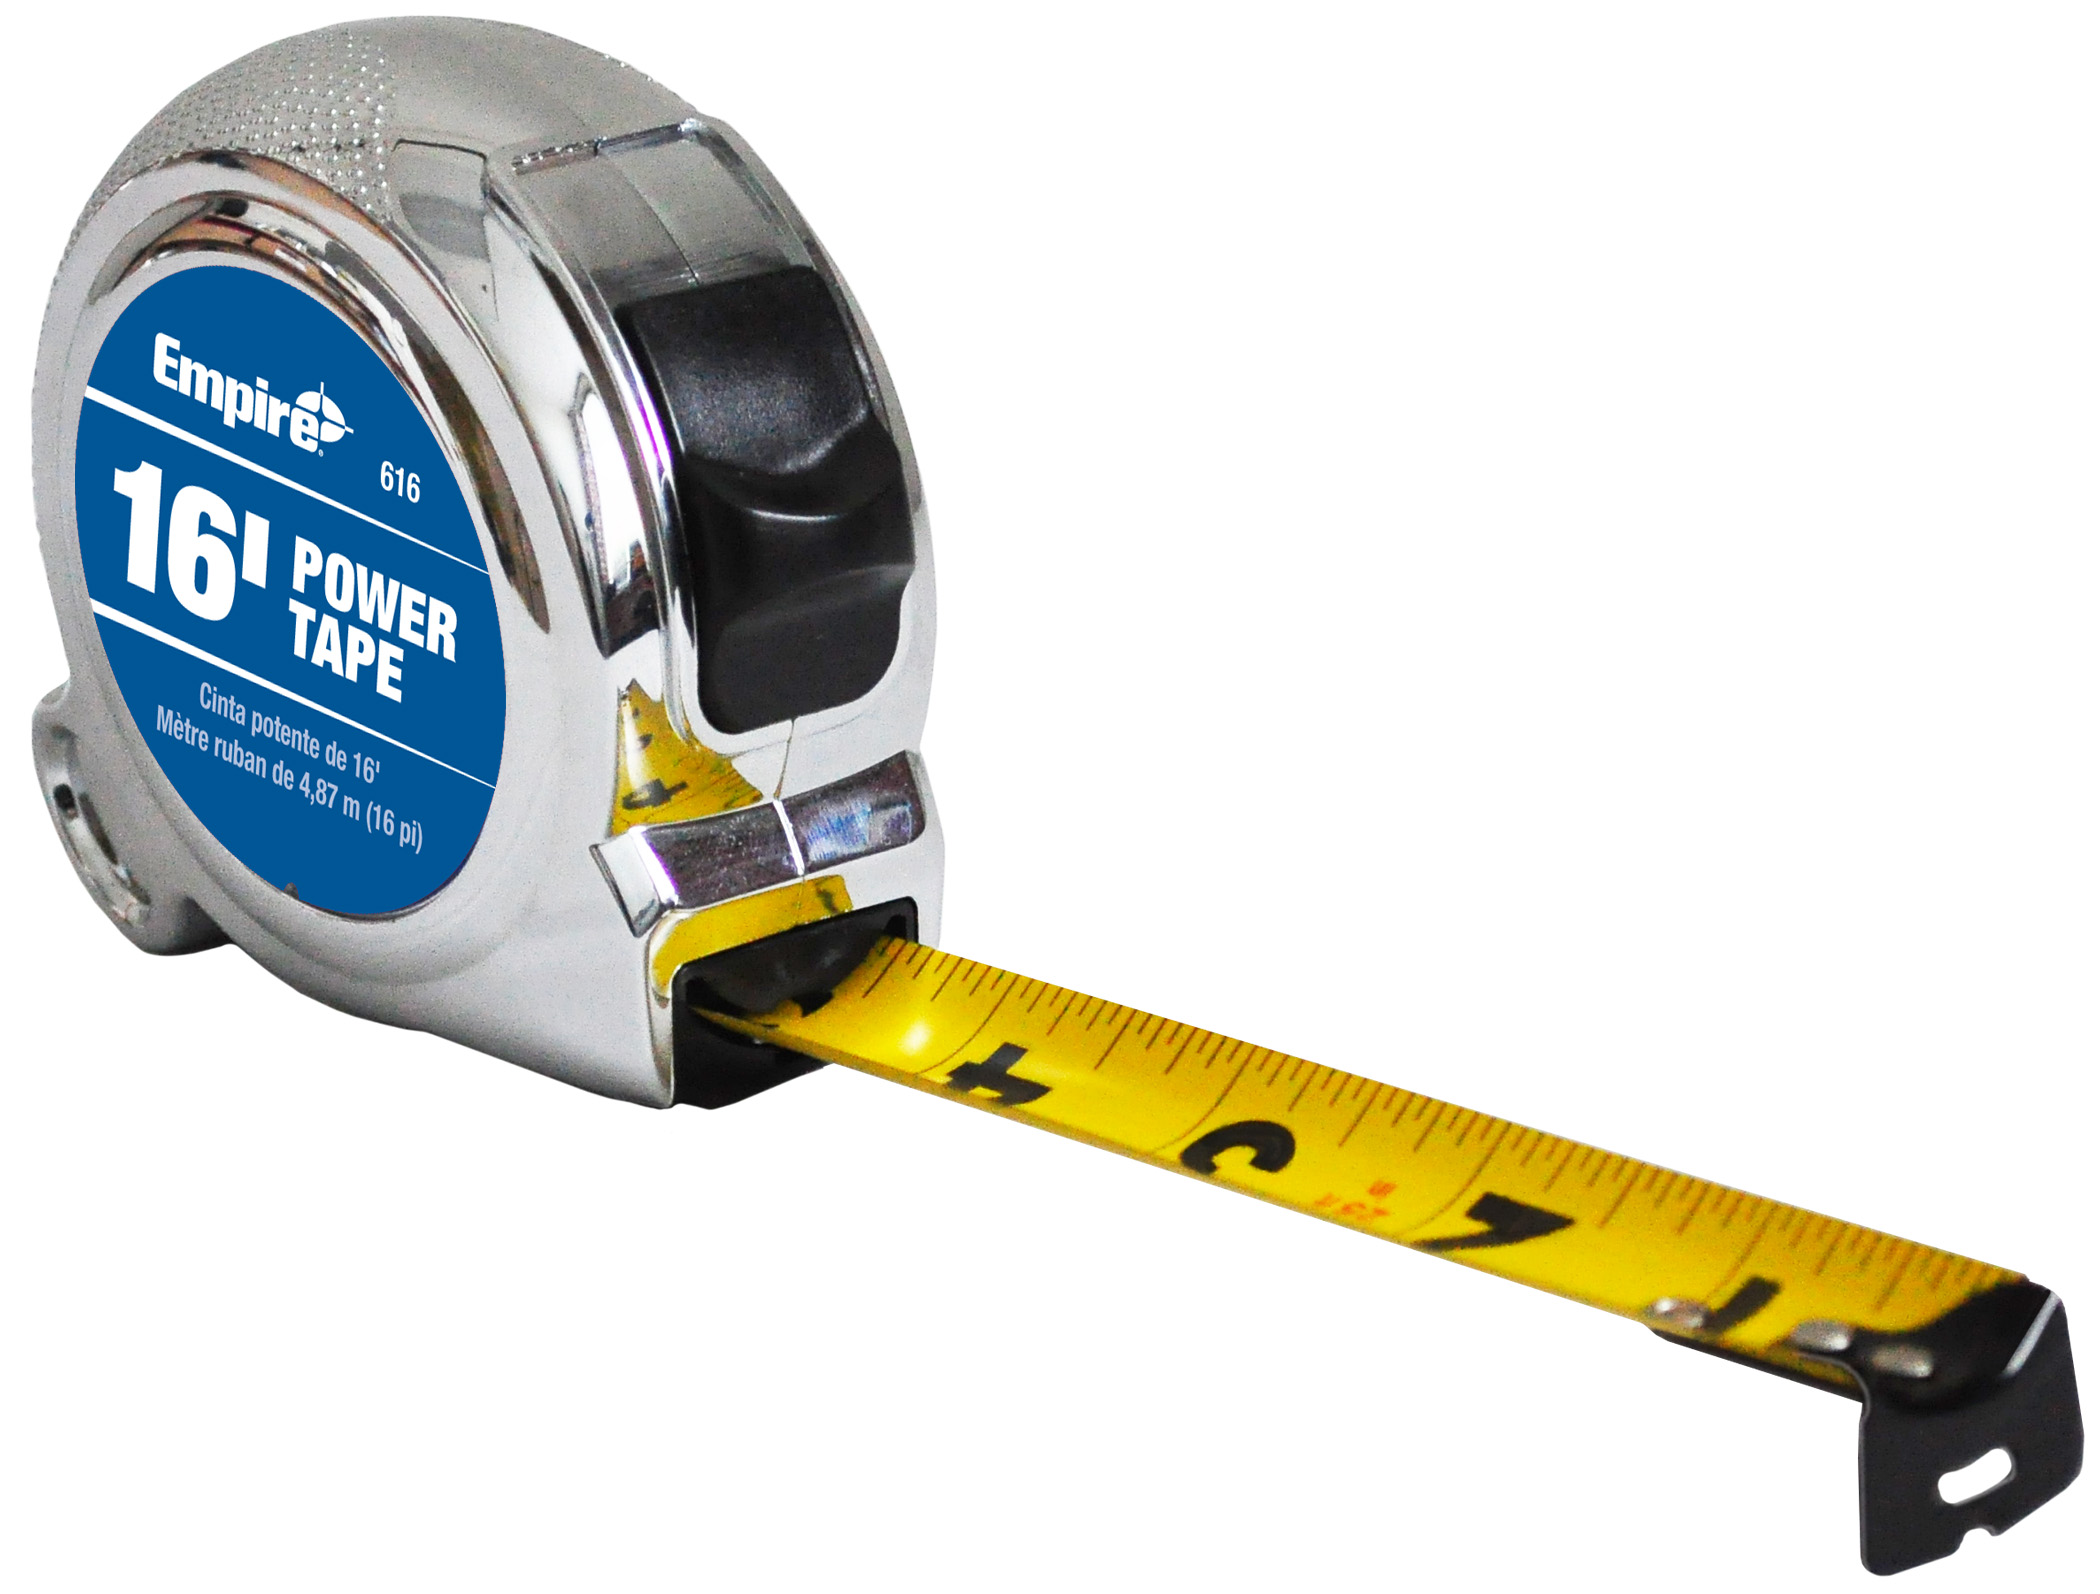 Milwaukee® 616 Ergonomic Power Tape With Belt Clip, 16 ft L x 3/4 in W Blade, Steel Blade, Imperial Measuring System, 1/16 in Graduation